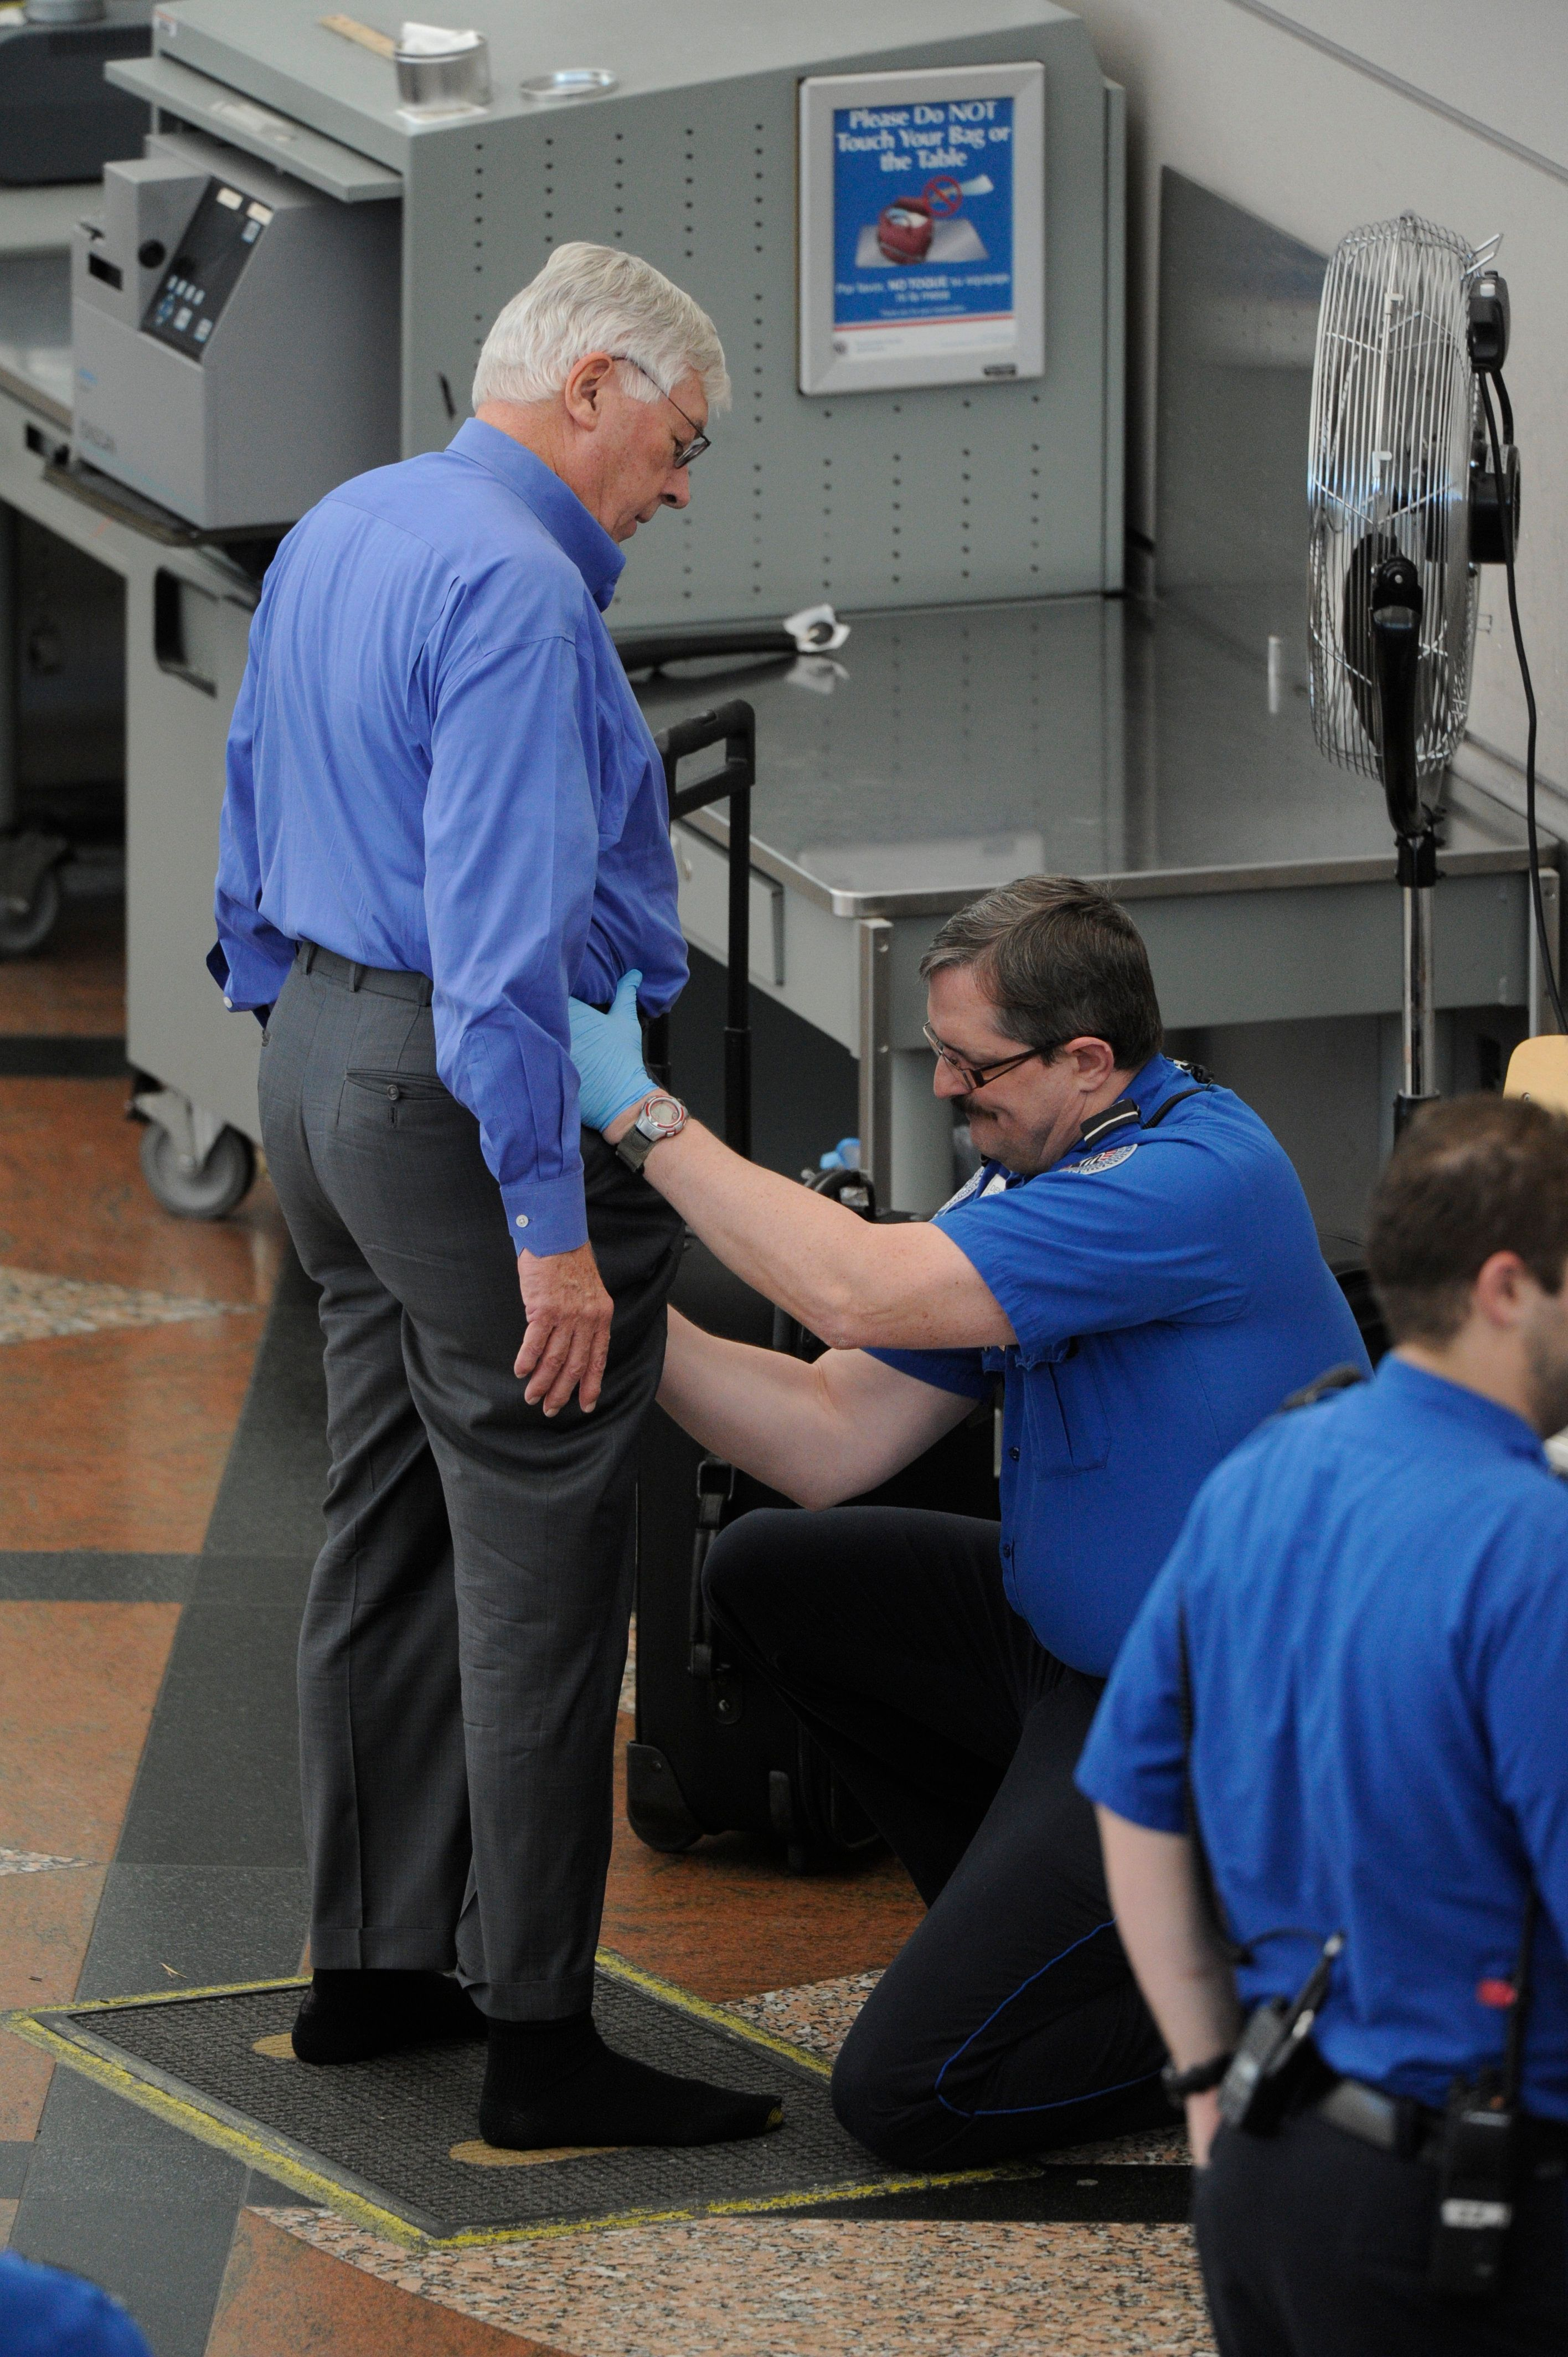 Airport pat-downs are about to get more intimate for passengers who receive them.